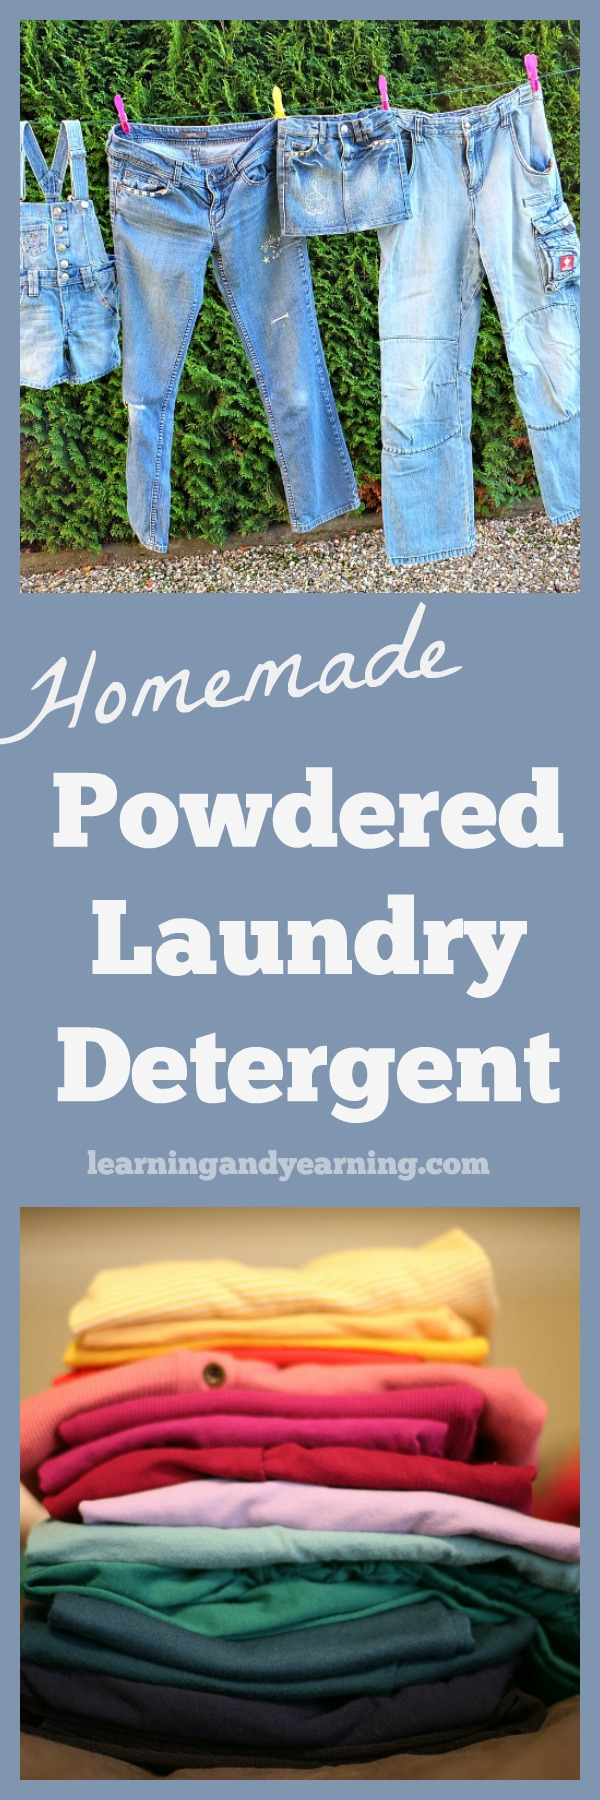 This homemade powdered laundry detergent is soap-and-borax-free, and uses